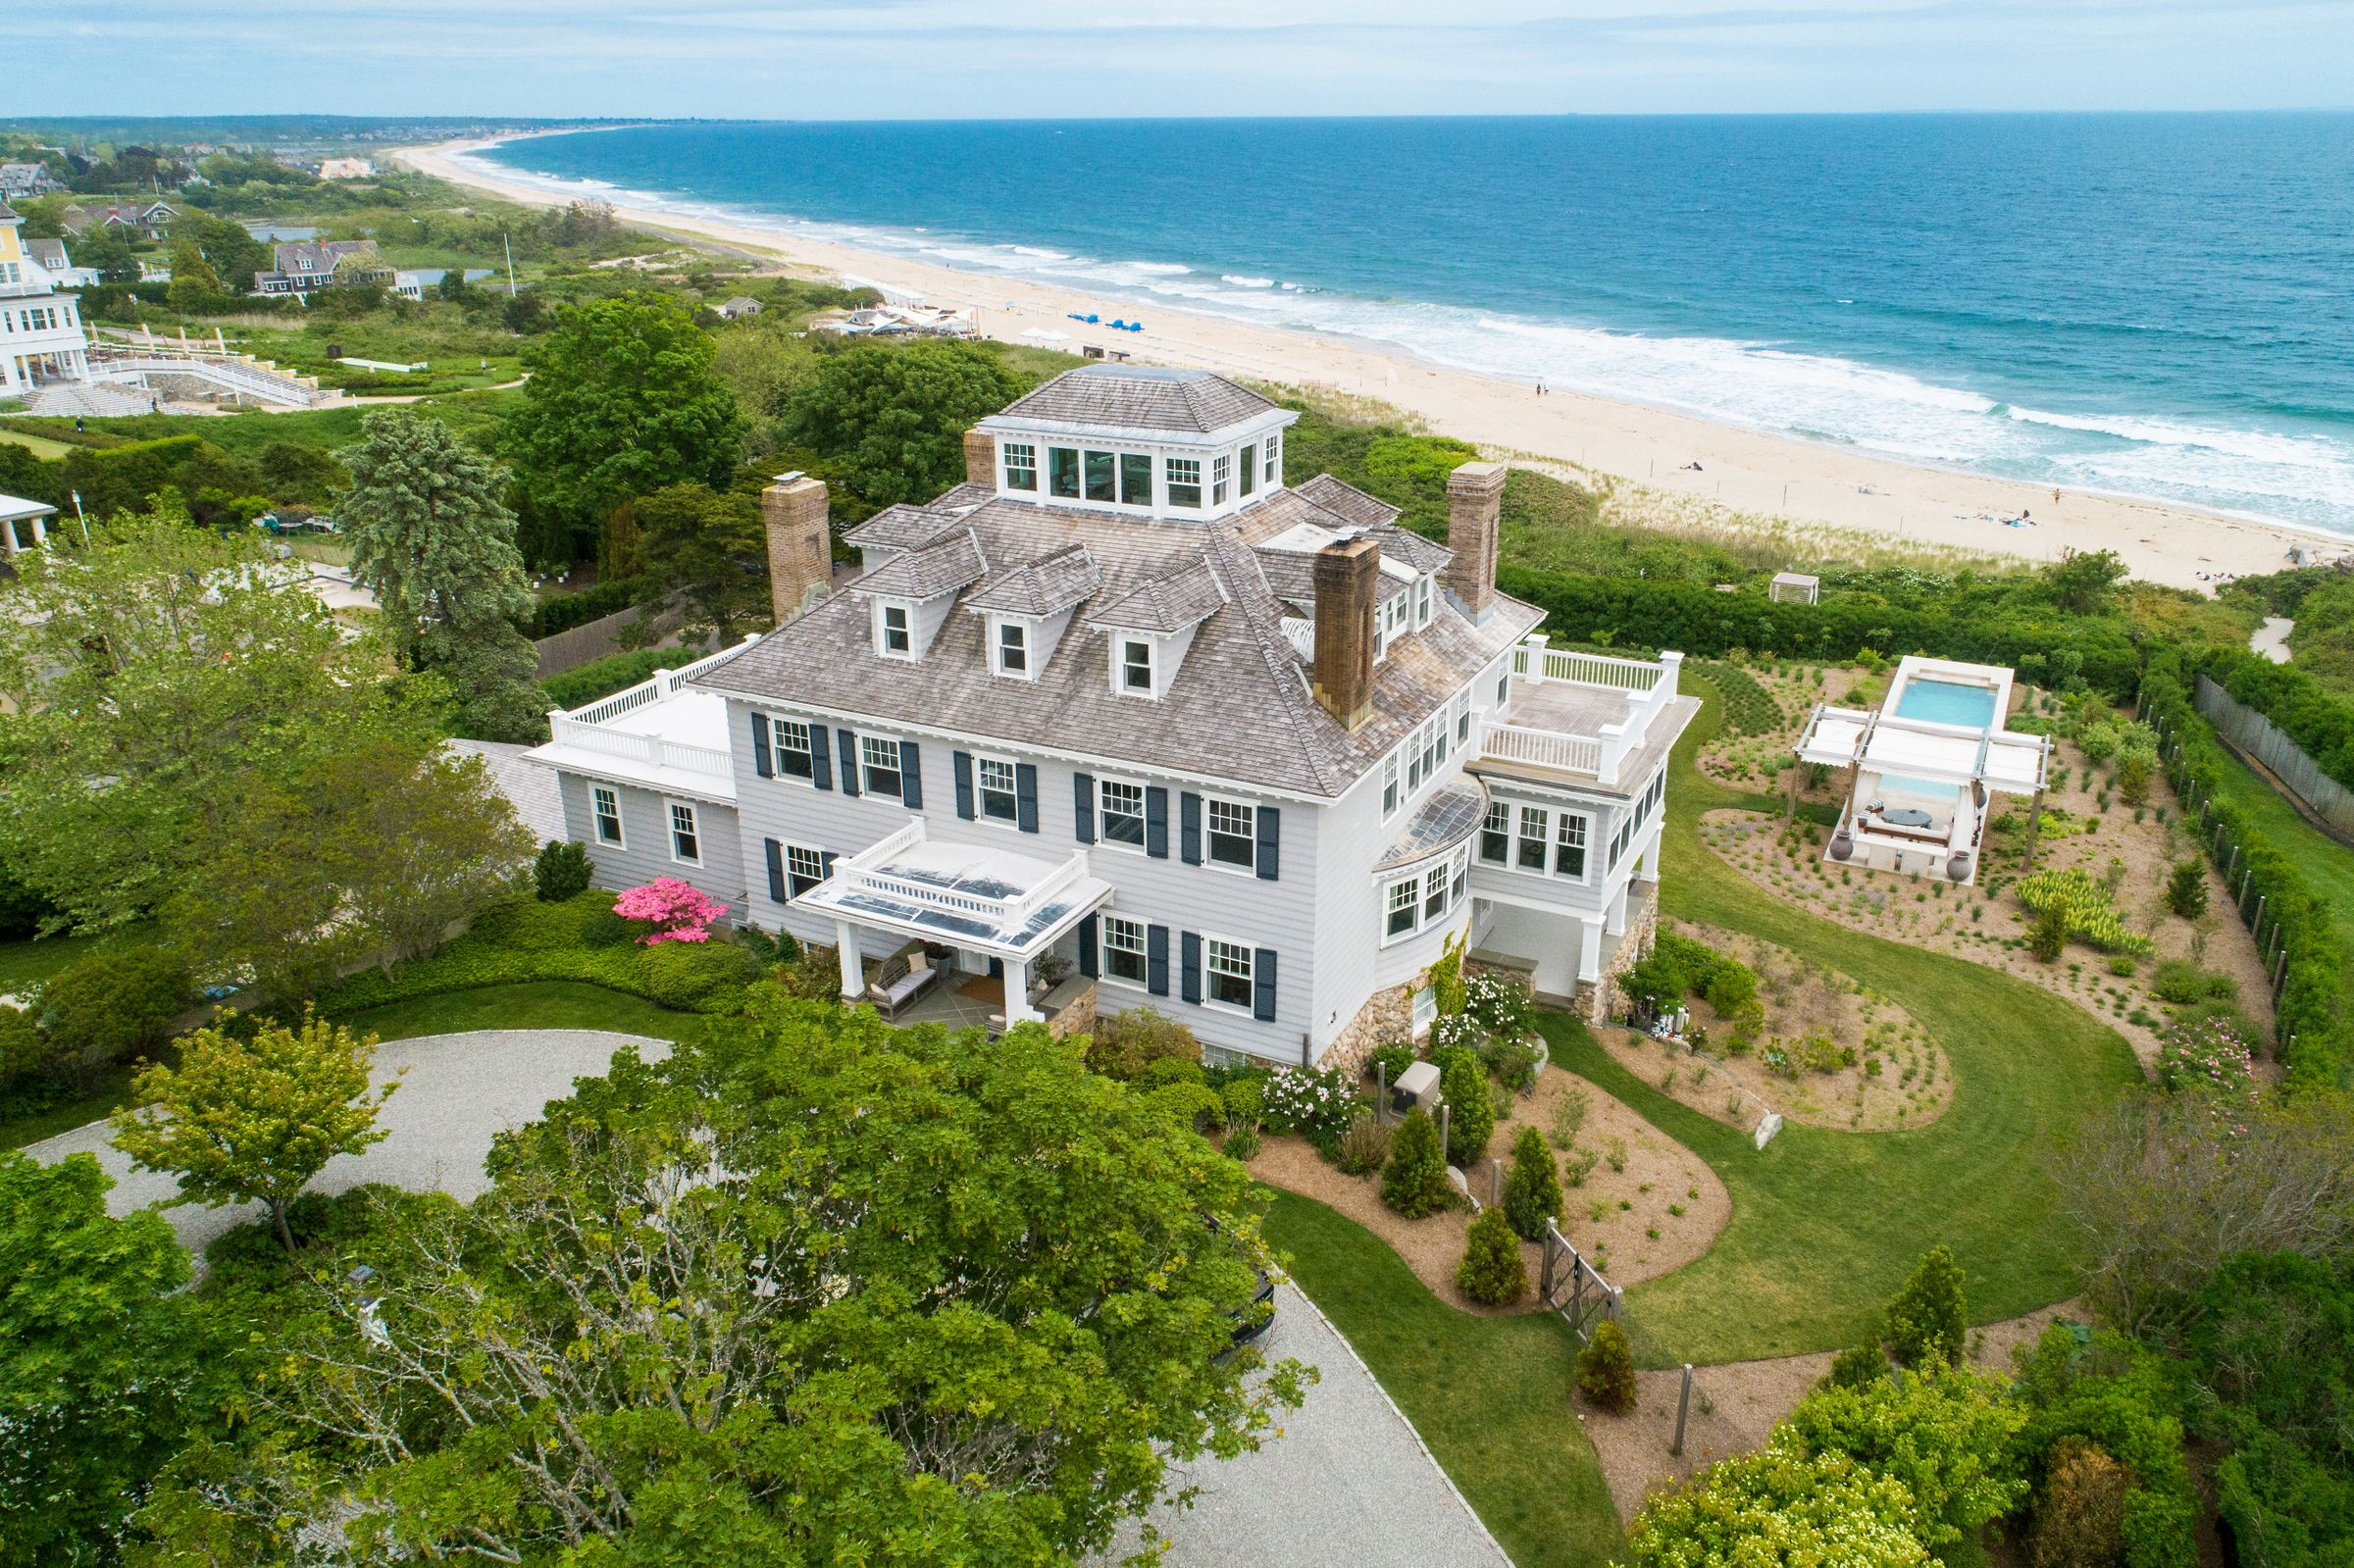 LILA DELMAN REAL ESTATE SELLS WATCH HILL'S 10 BLUFF AVENUE  FOR THE SECOND TIME, MARKING A MONUMENTAL SALE IN THE HISTORY OF RHODE ISLAND'S REAL ESTATE MARKET